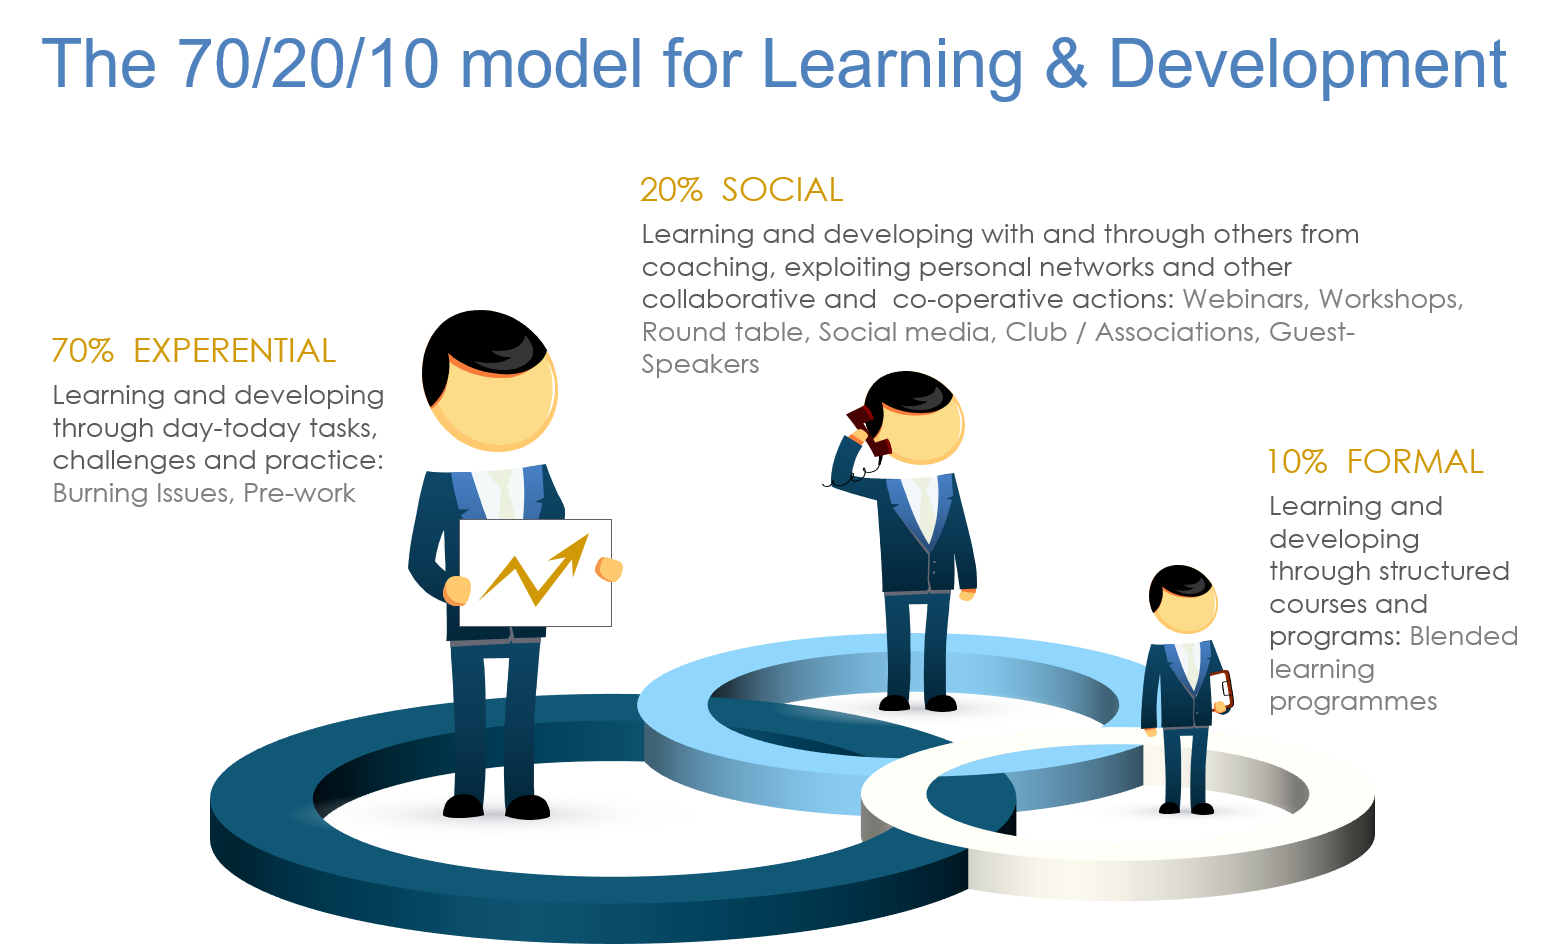 The 70/20/10 model for Learning & Development